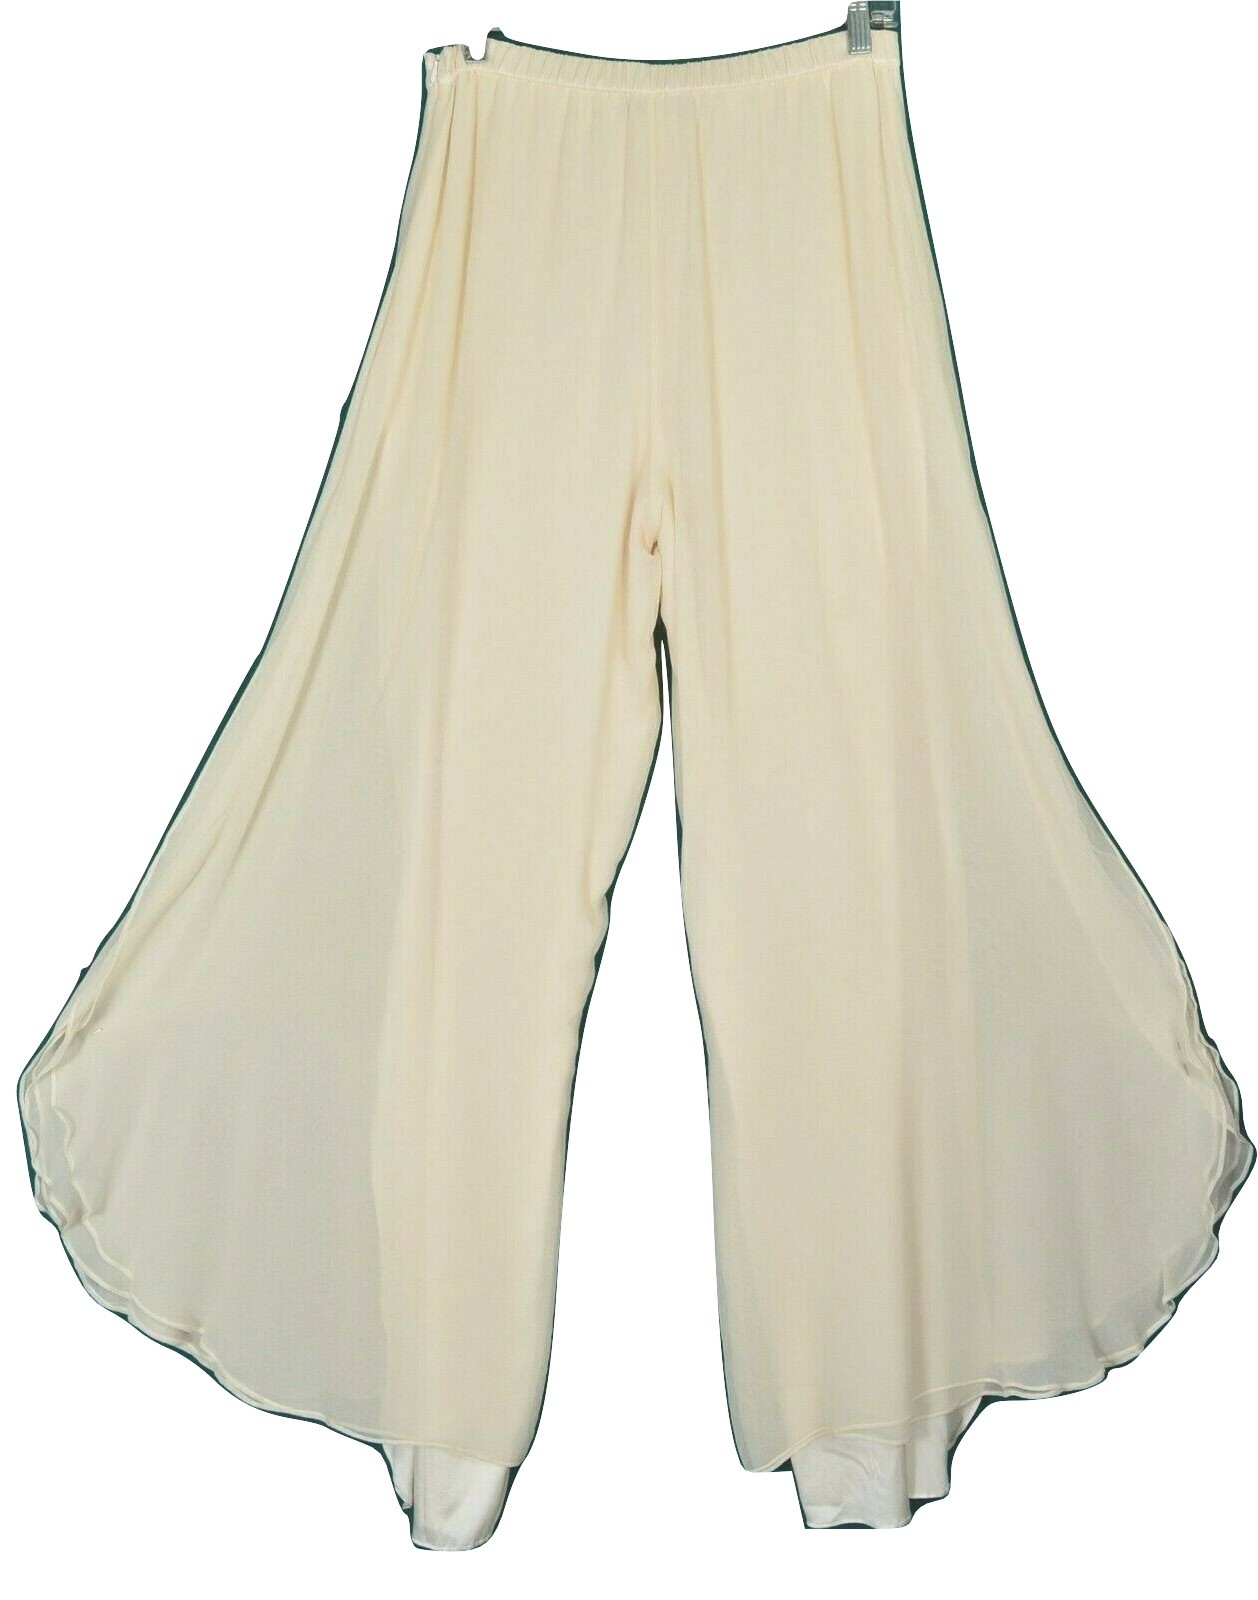 St John pants Evening SZ 8 off-white cream 2-layer silk long slits on leg USA image 10